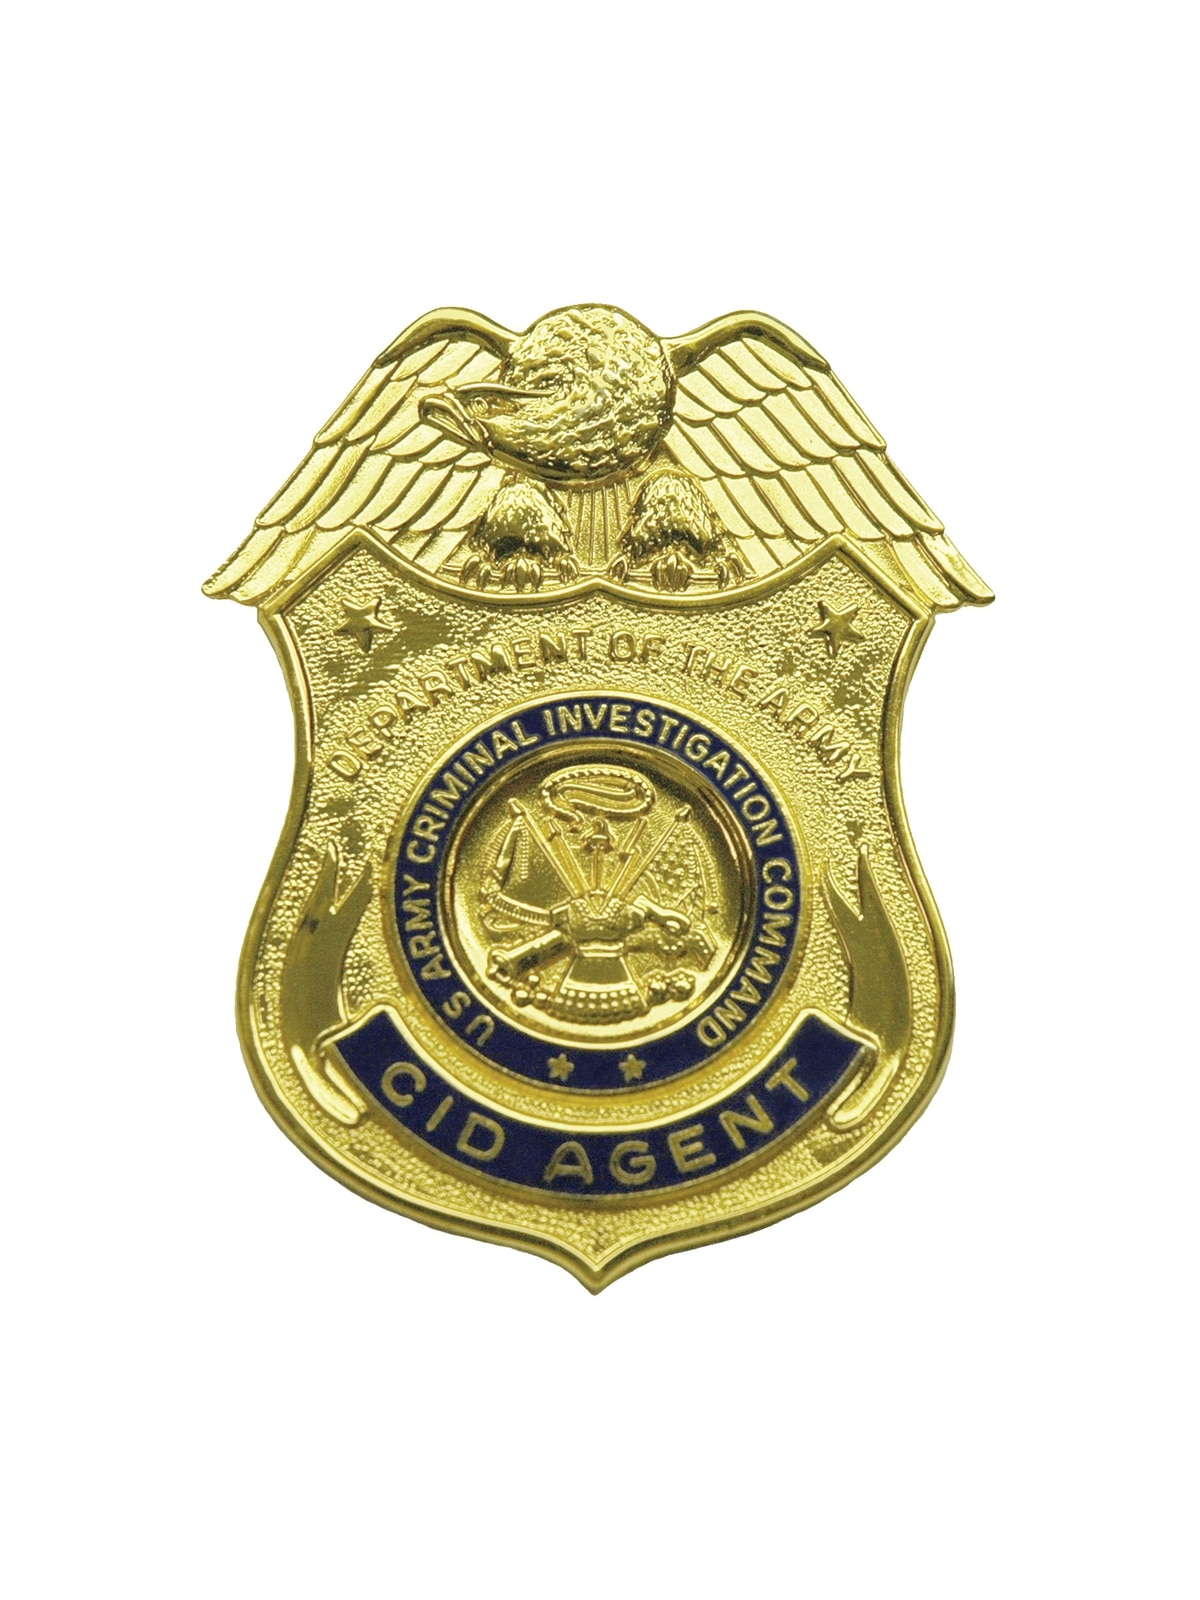 Applications open for CID special agent appointments